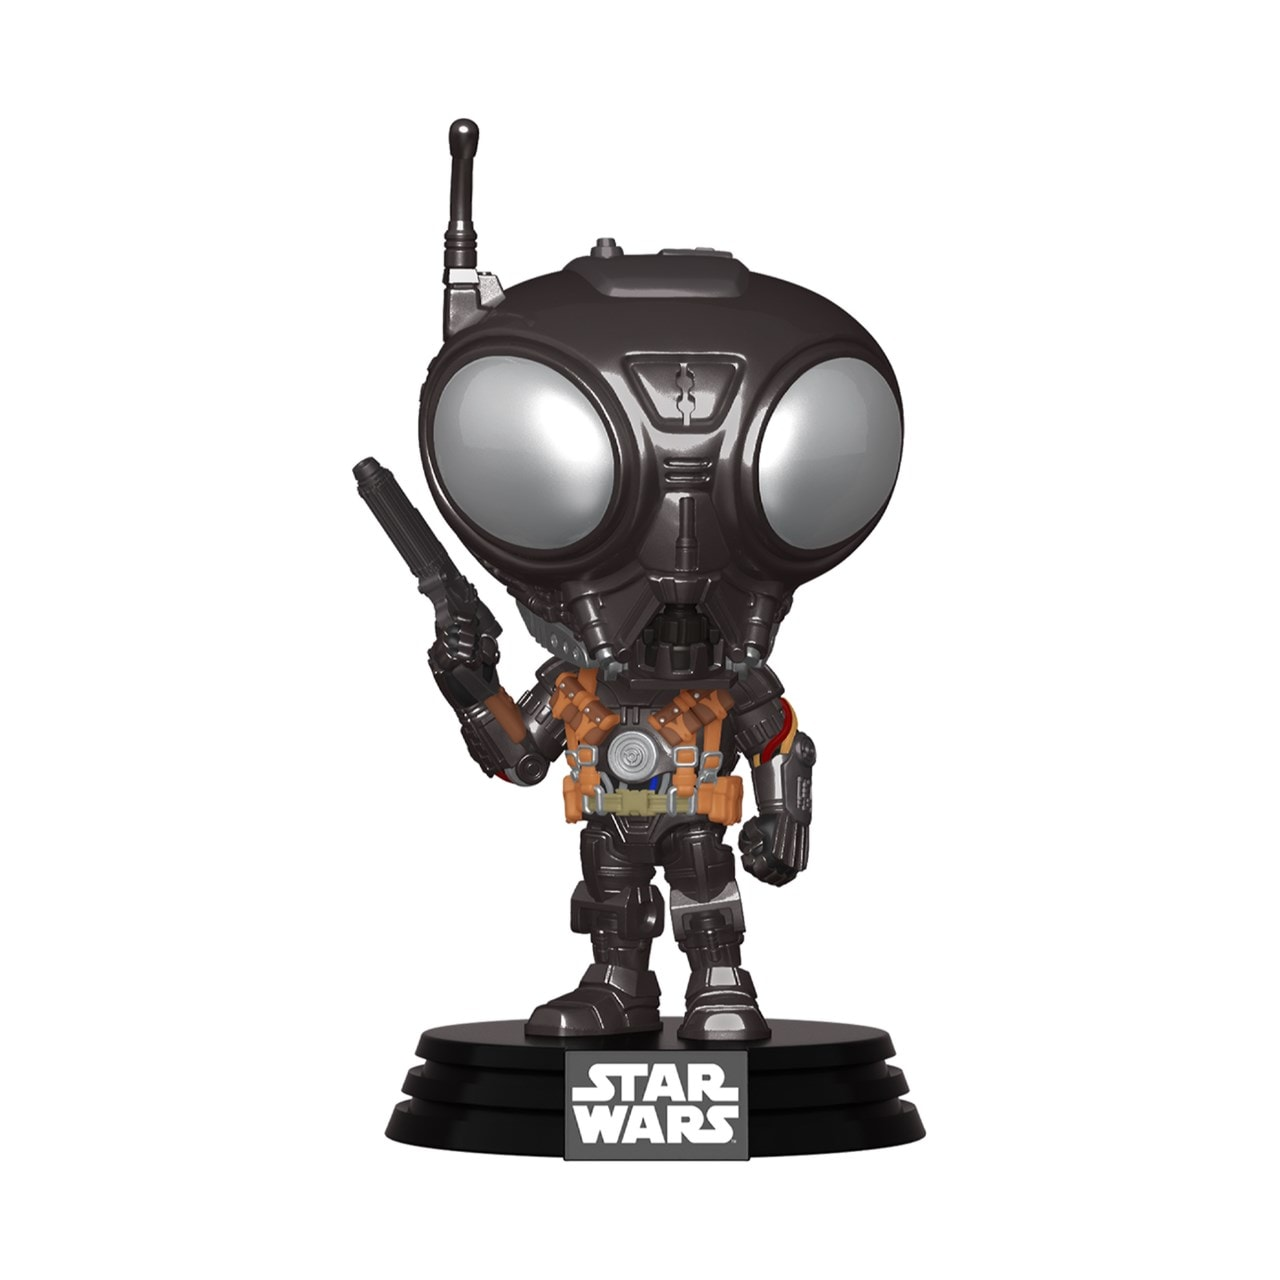 Pop Vinyl: Q9-Zero (349): The Mandalorian: Star Wars - 1